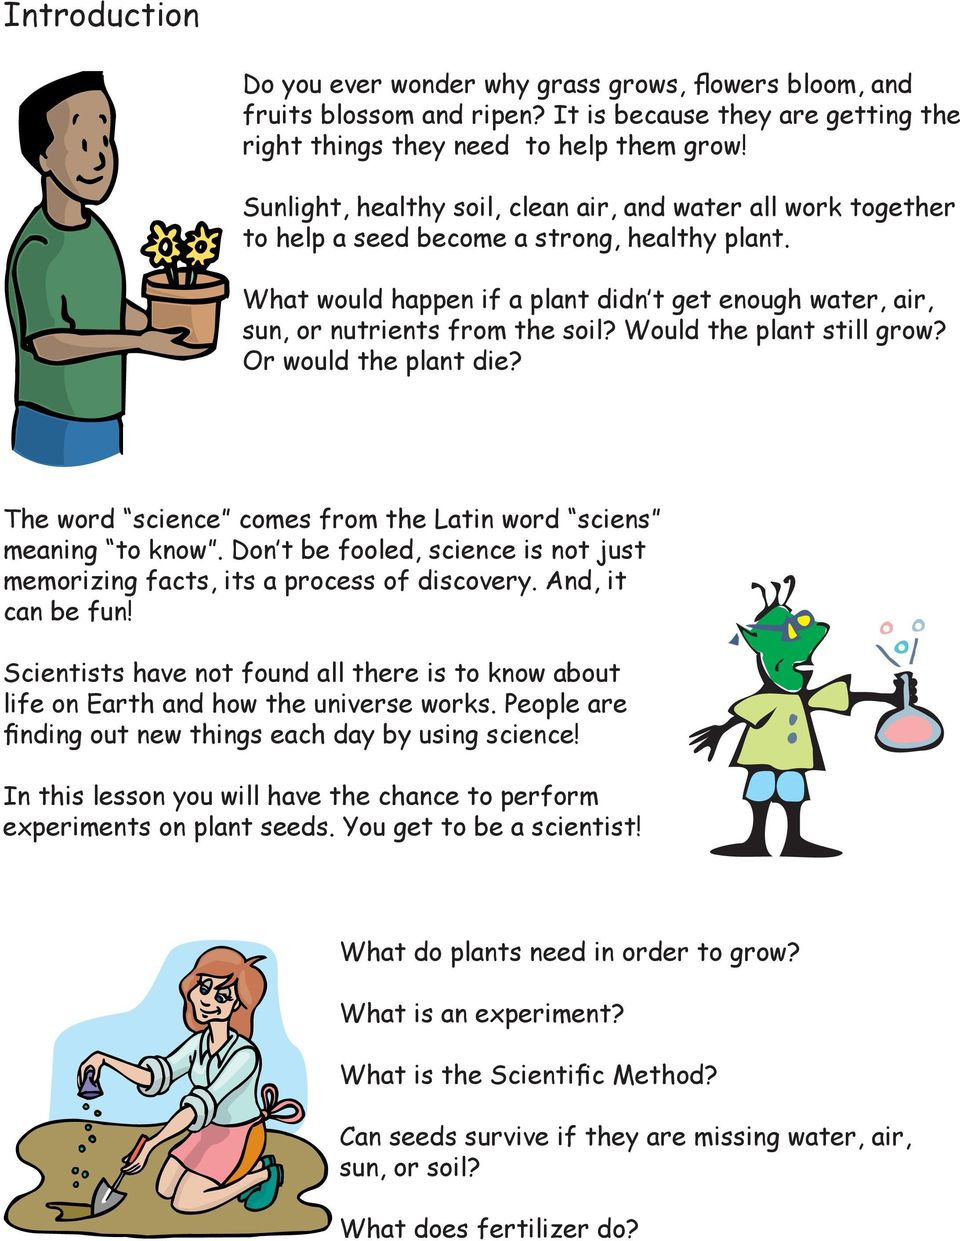 What would happen if a plant didn t get enough water, air, sun, or nutrients from the soil? Would the plant still grow? Or would the plant die?